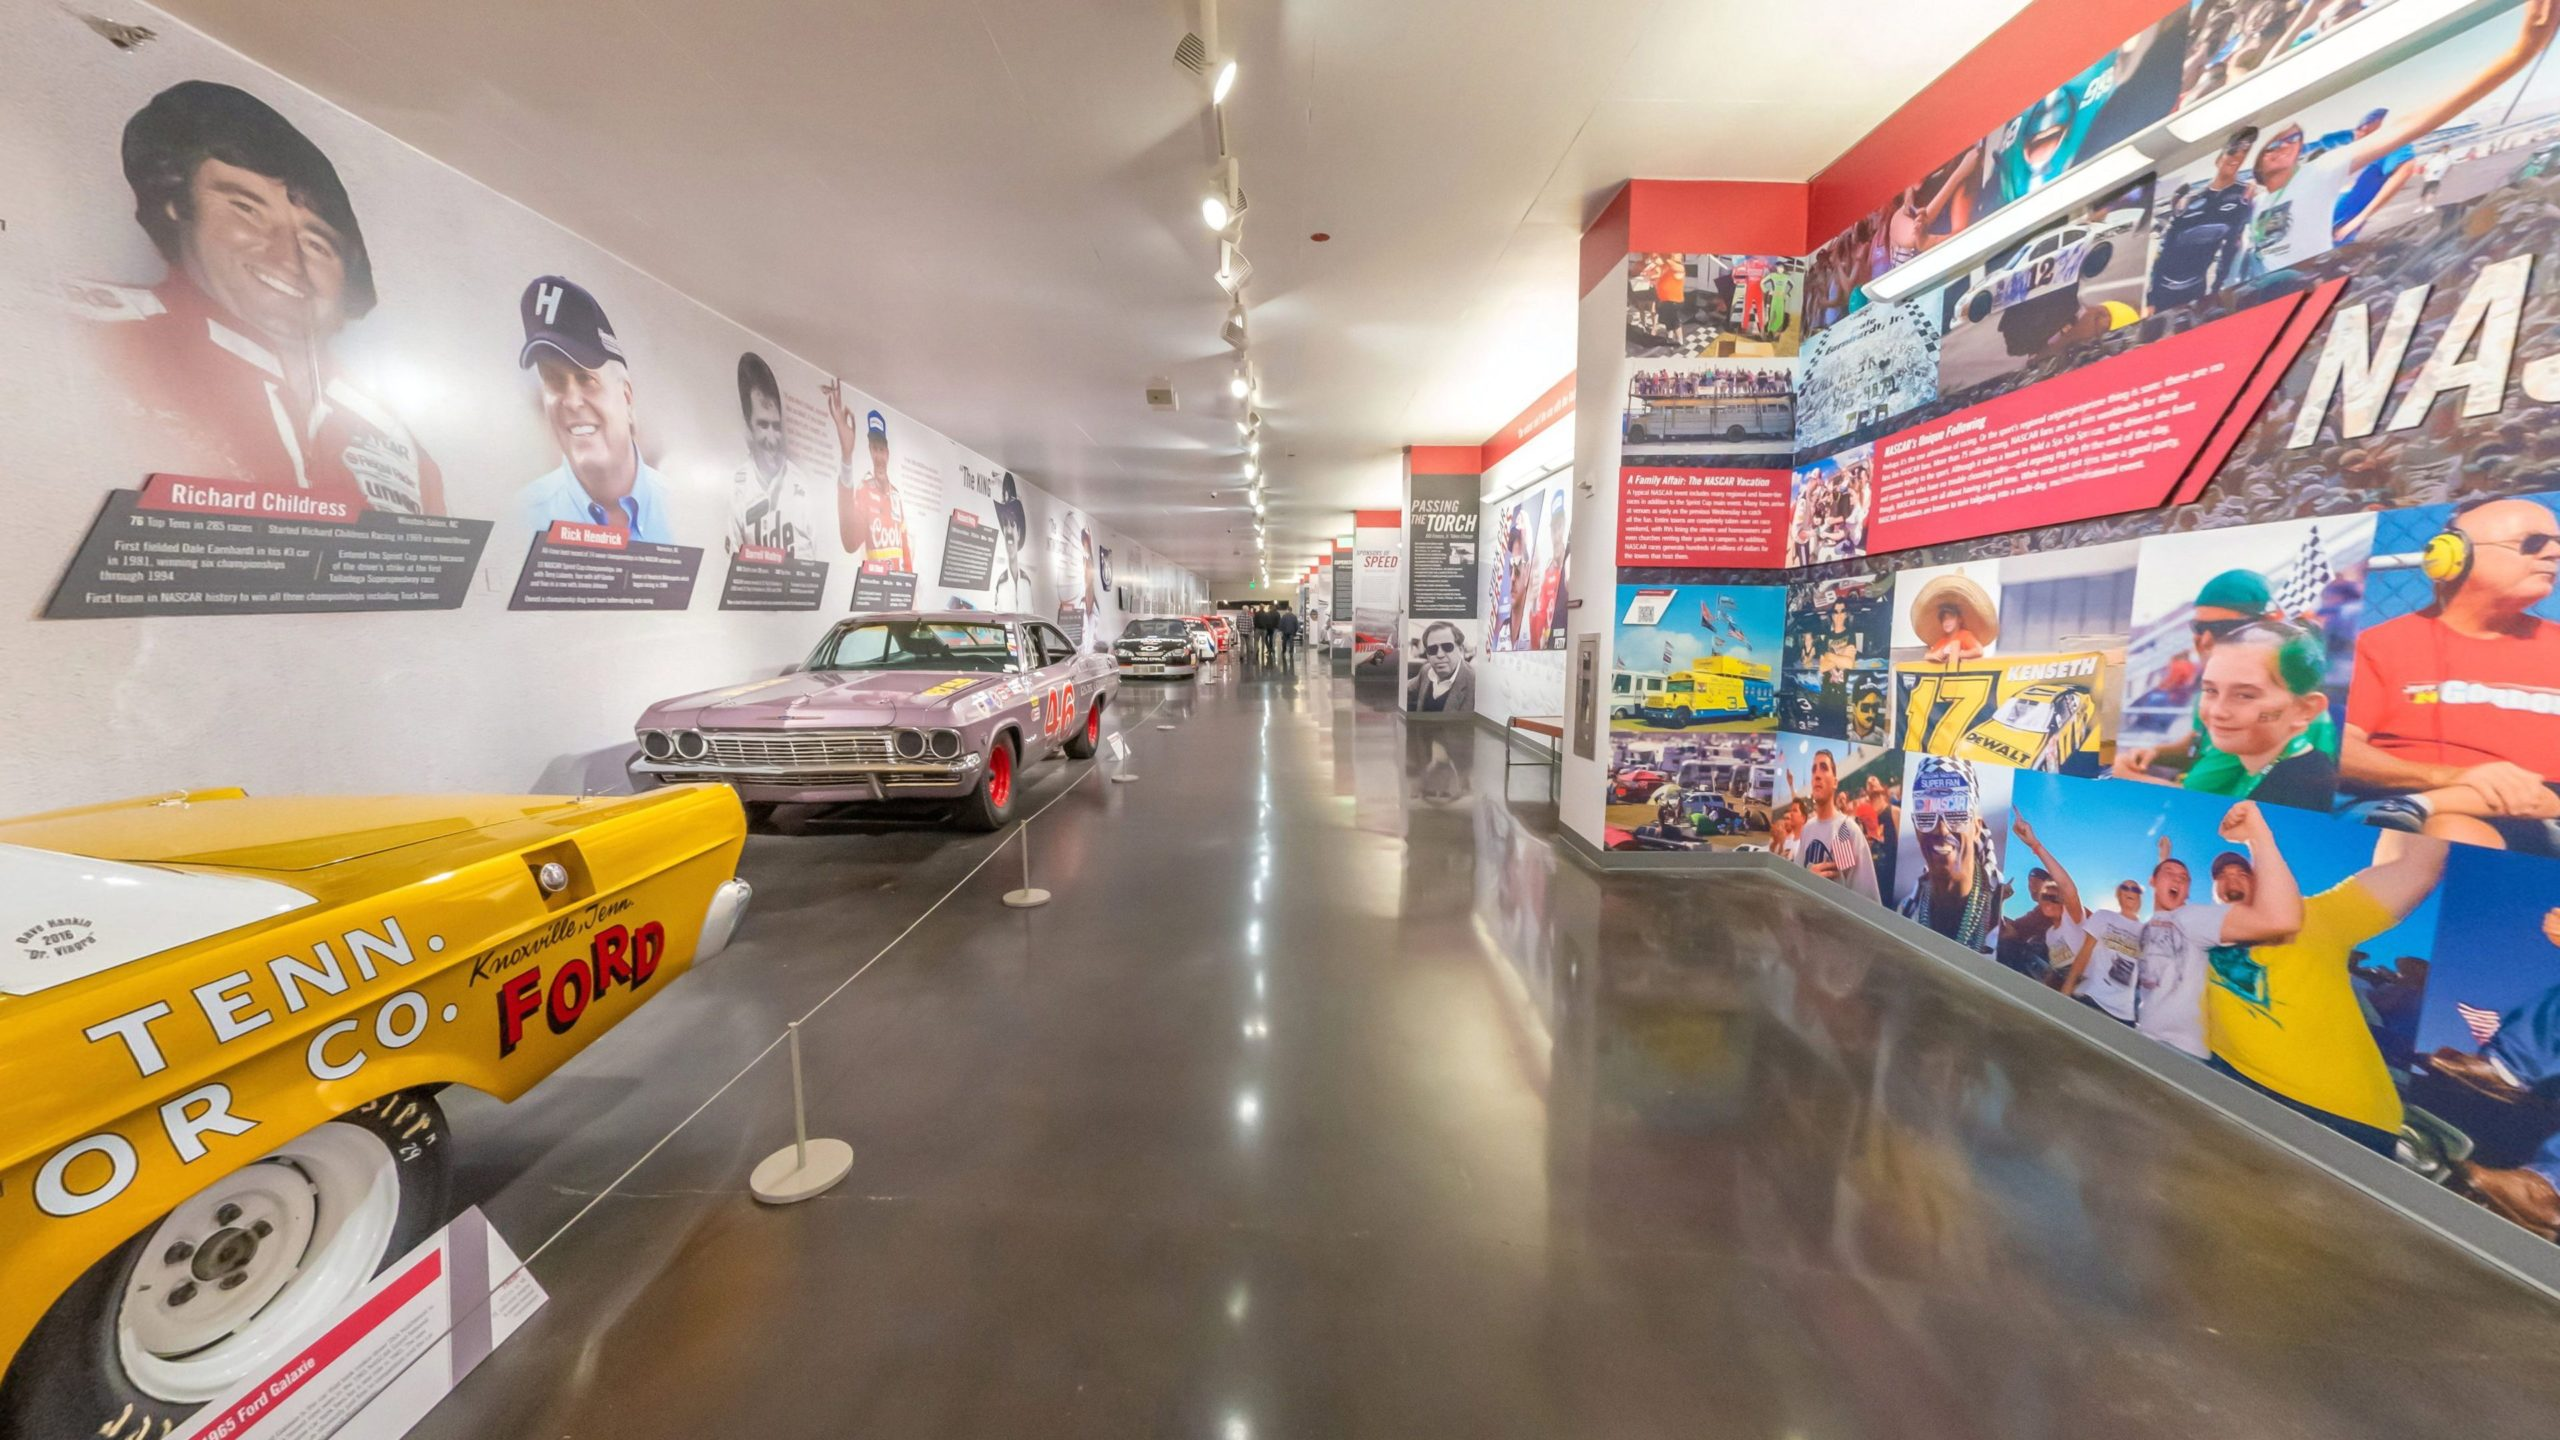 Exhibition of American's racing cars at the LeMay Museum. 360° photo.